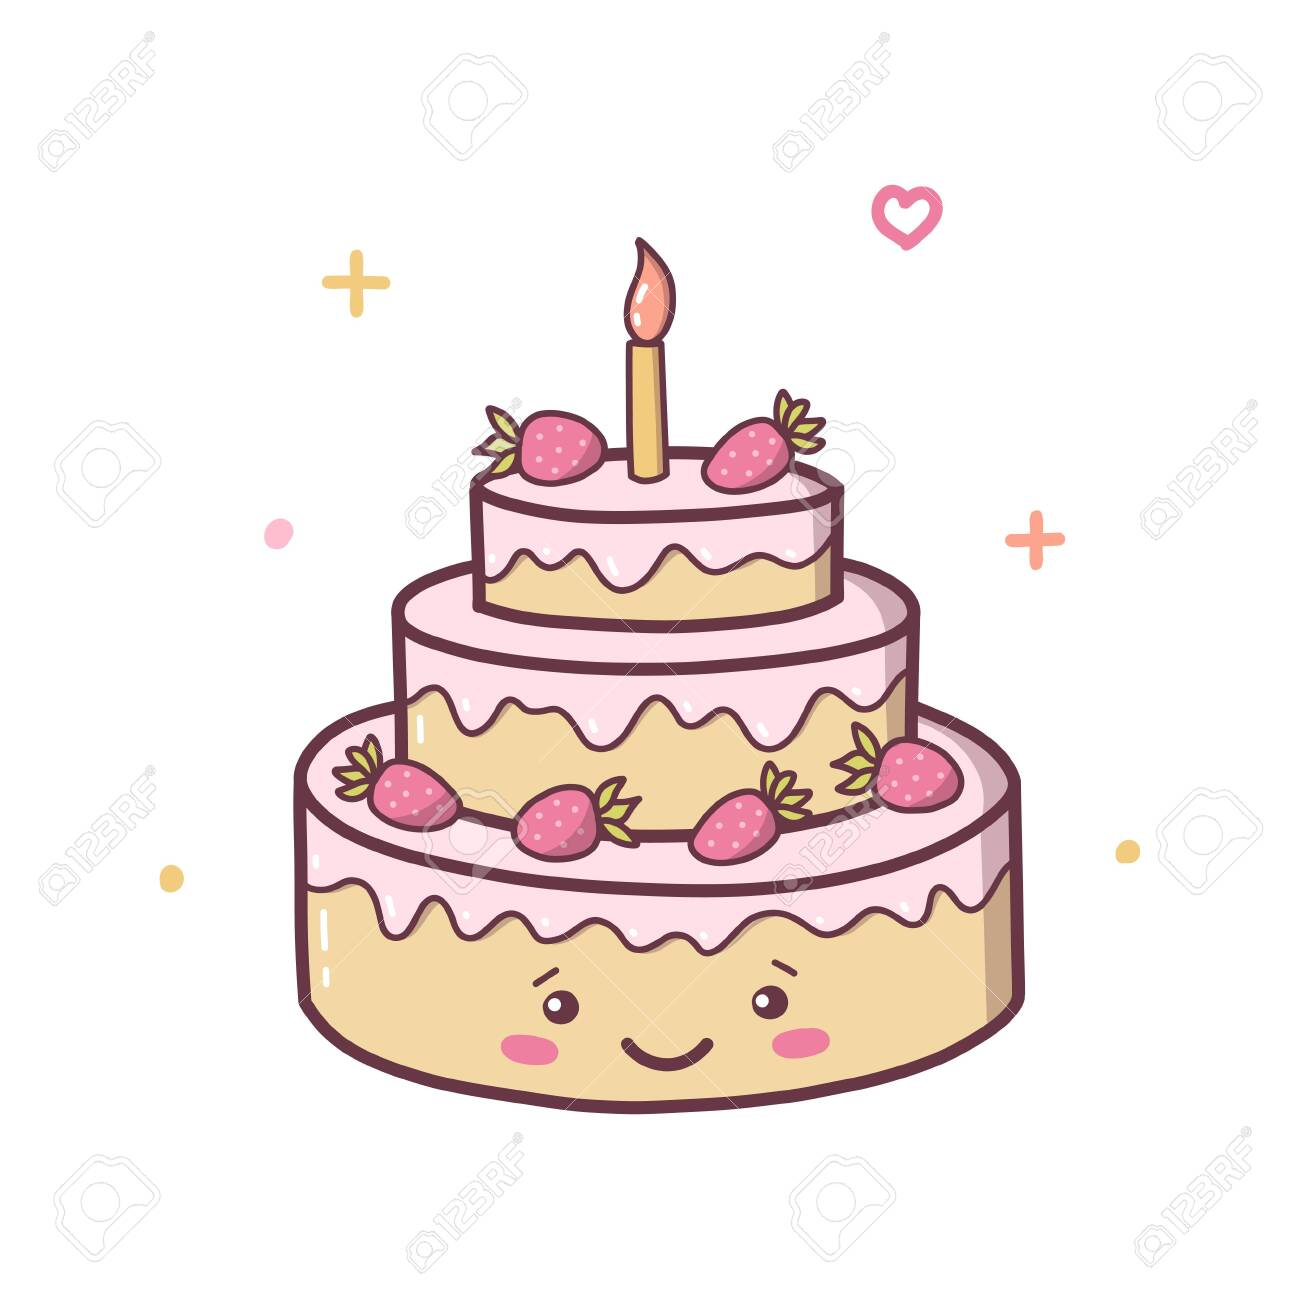 Happy Birthday Cake With Strawberries Kawaii Cartoon Character Royalty Free Cliparts Vectors And Stock Illustration Image 140400156